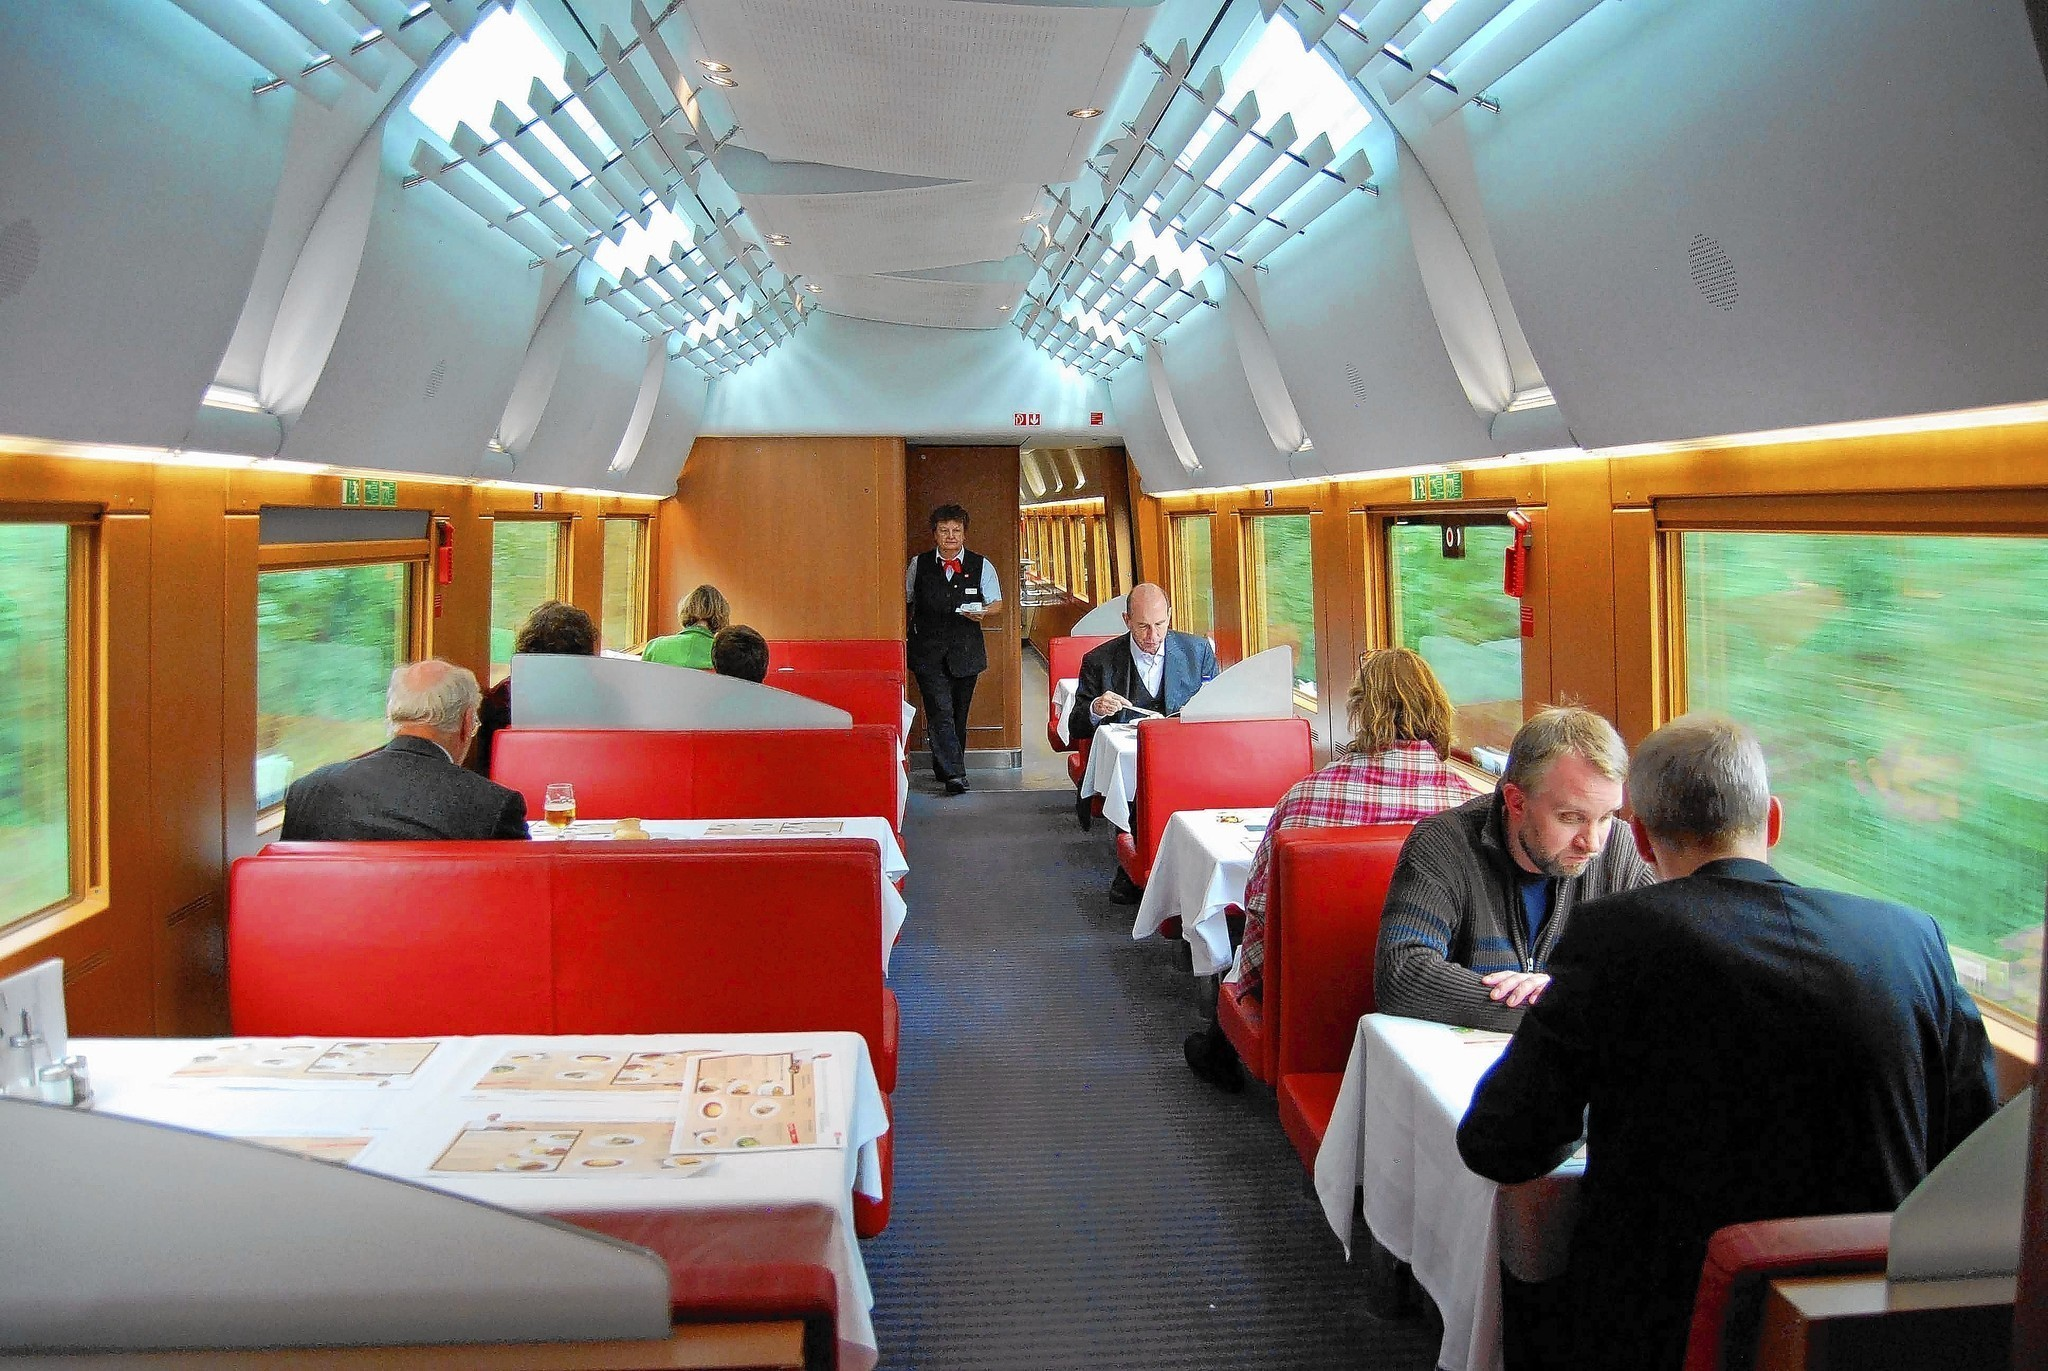 joys of train travel in germany 452a slow train to switzerland artists safari joys of travel by travel with rick steves published on 2018-08-24t00:46:34z in what was the beginning of the packaged tour, find out how middle class victorian-era tourists from england enjoyed the swiss alps.